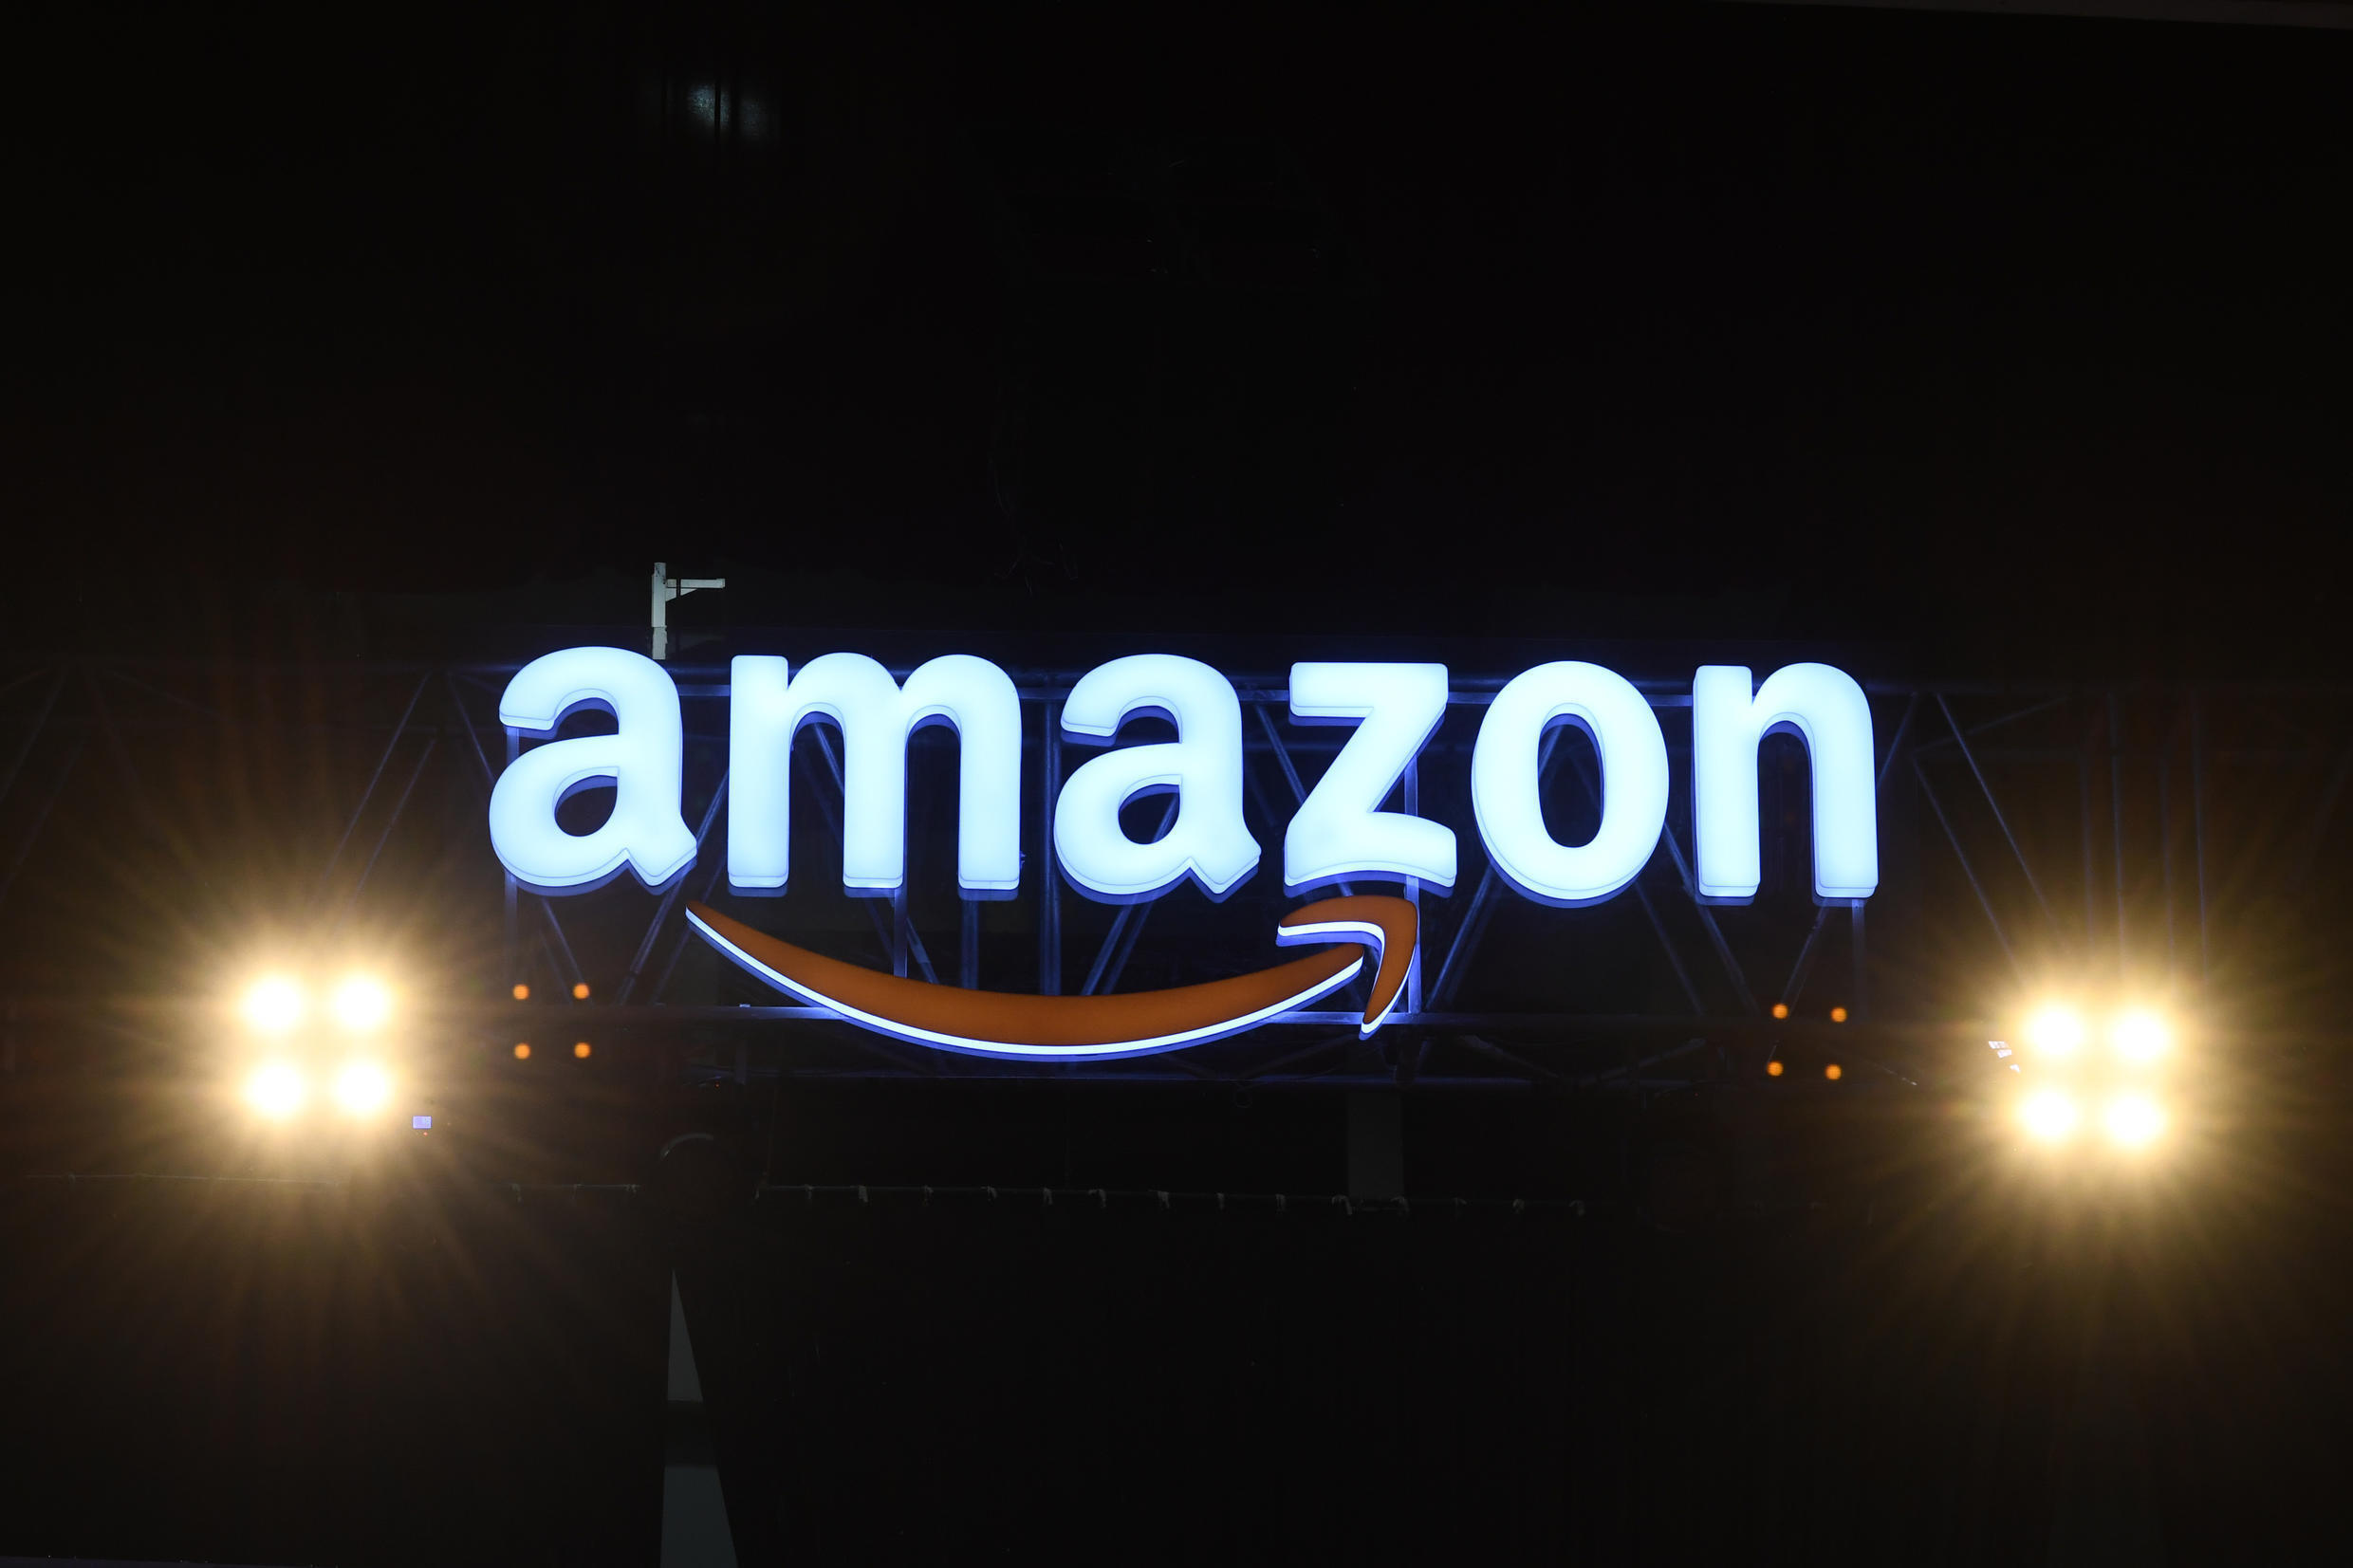 Amazon is extending its remote work policy for some employees until mid-2021 as part of its response to the coronavirus pandemic